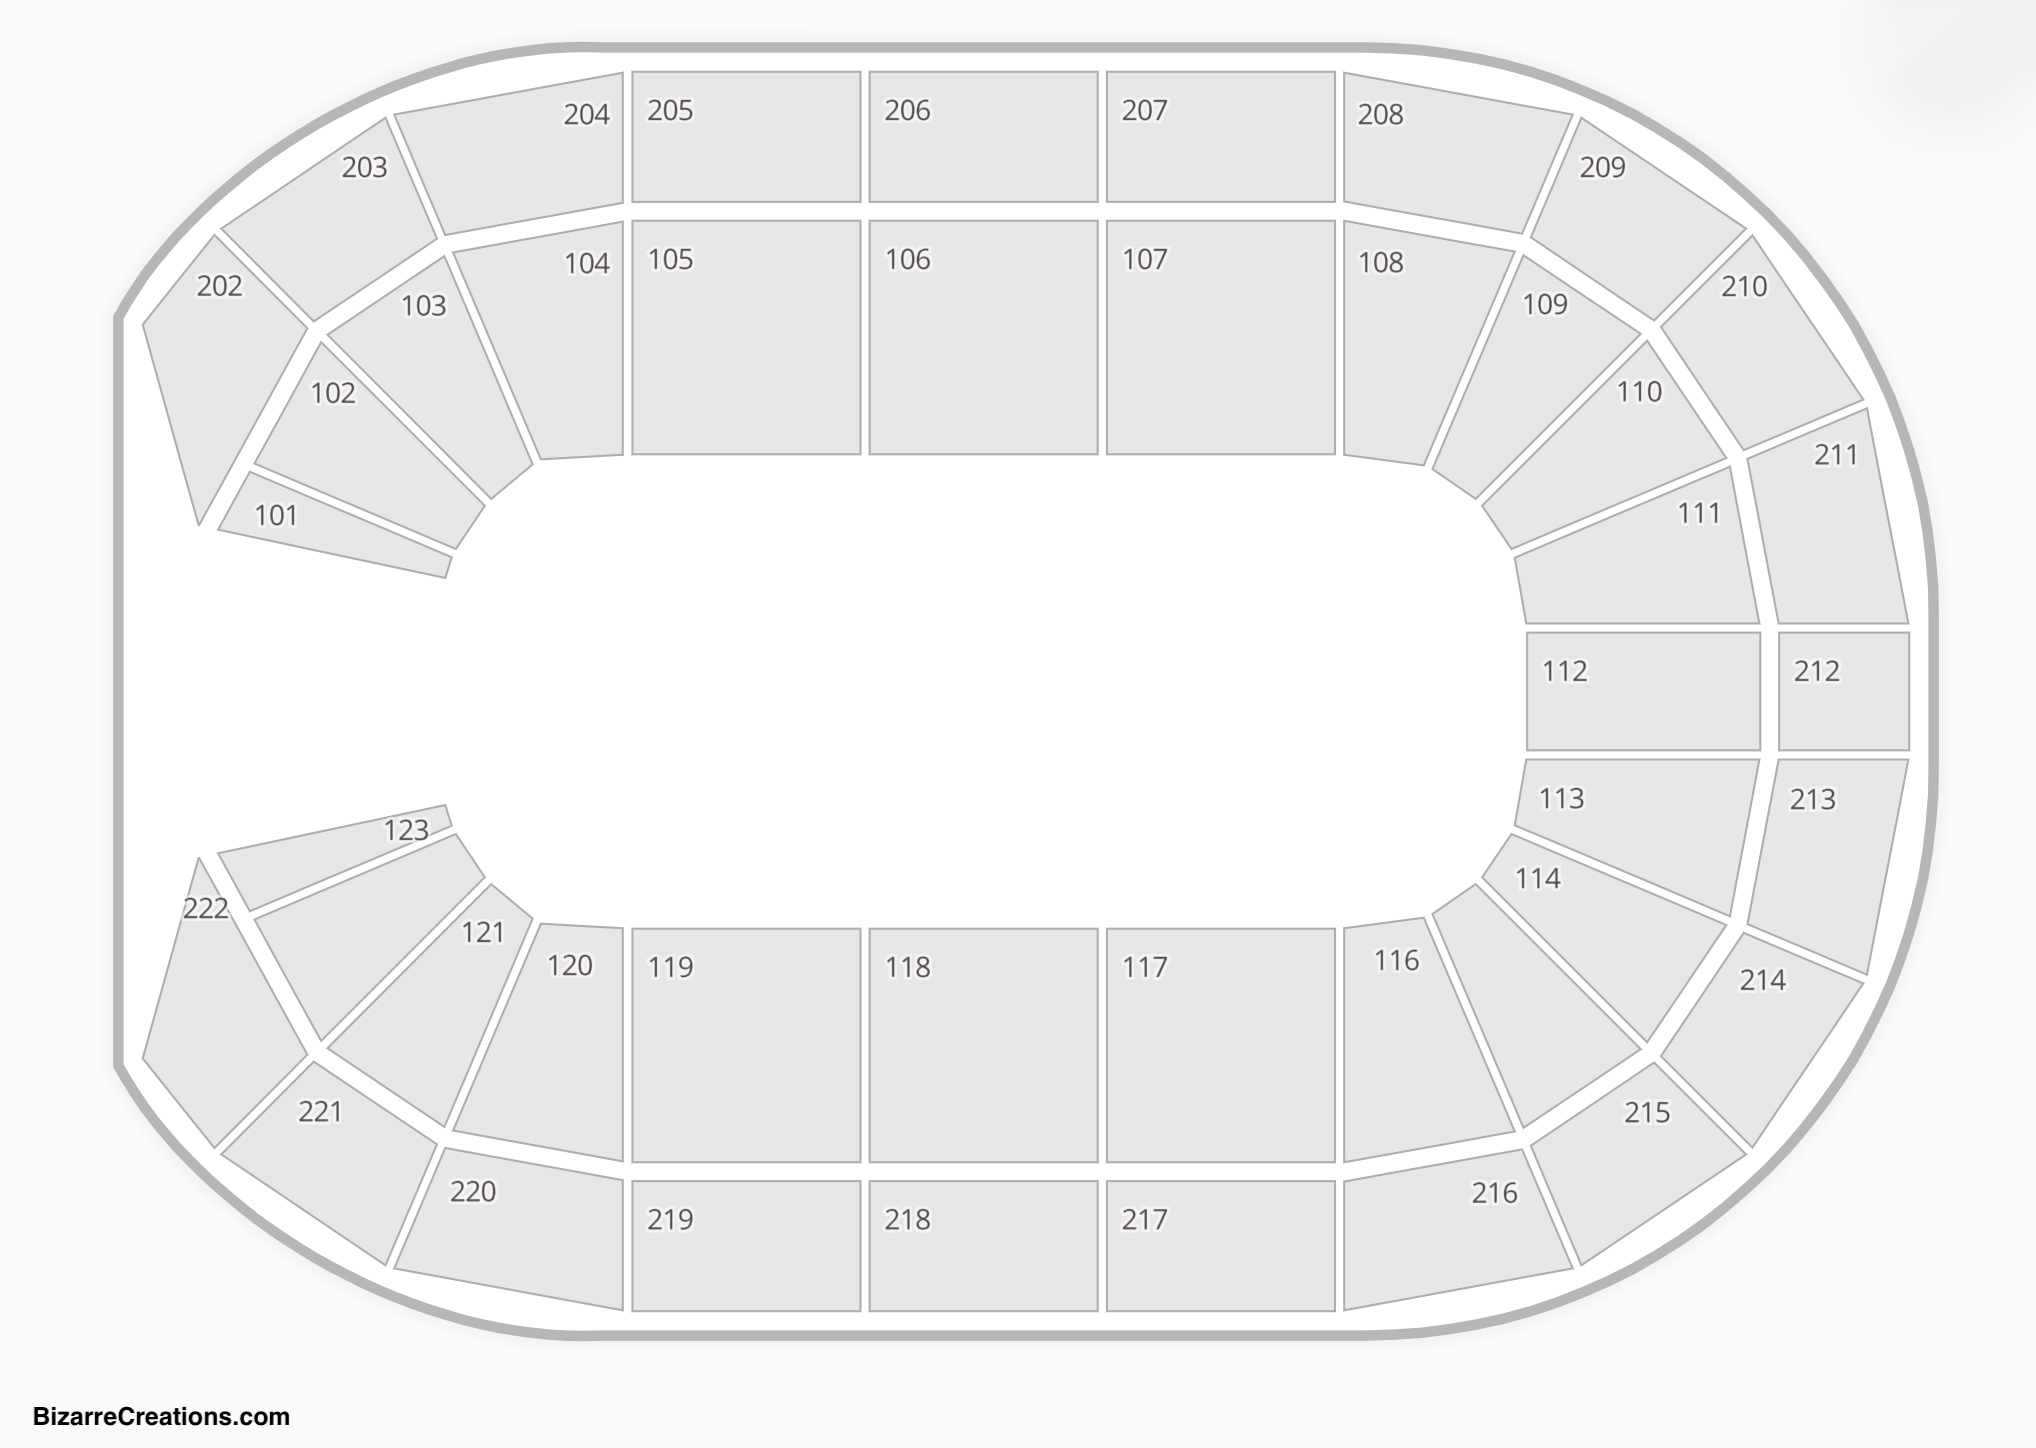 Landers Center Seating Chart Seating Charts Tickets